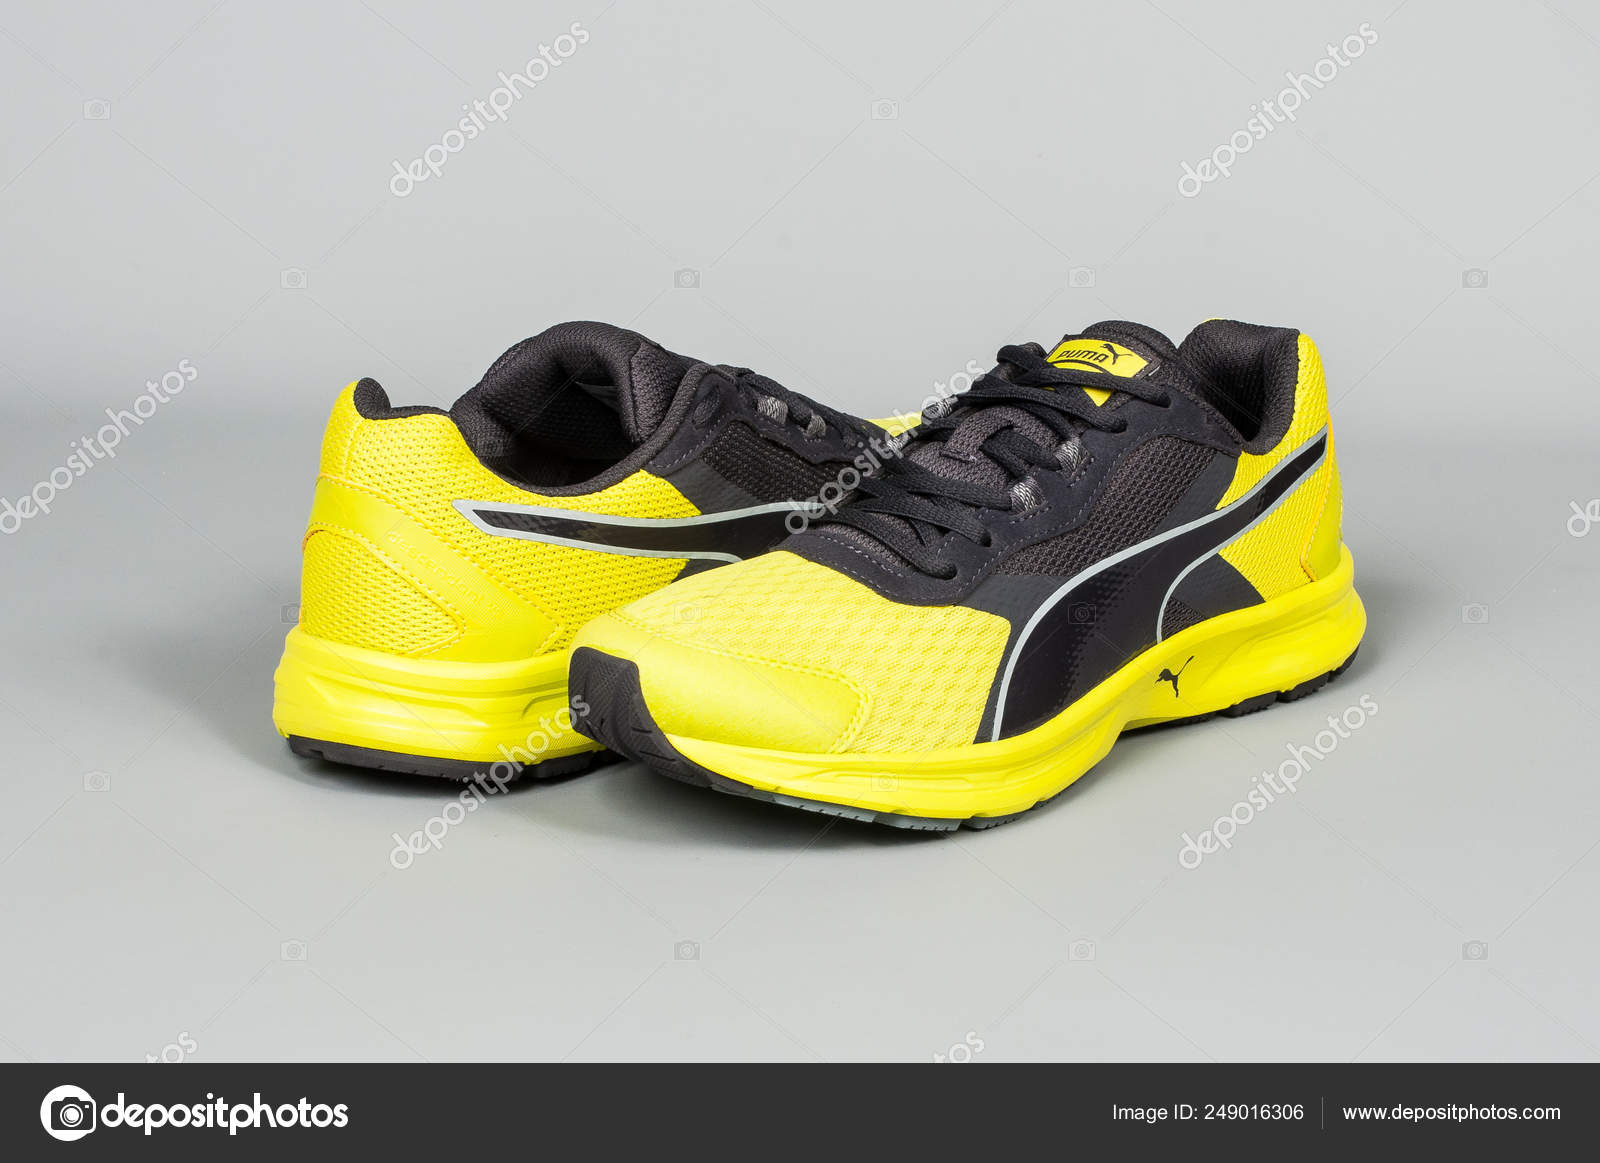 Medellin Colombie Marzo 2019 Puma Sport Chaussures Sur Fond